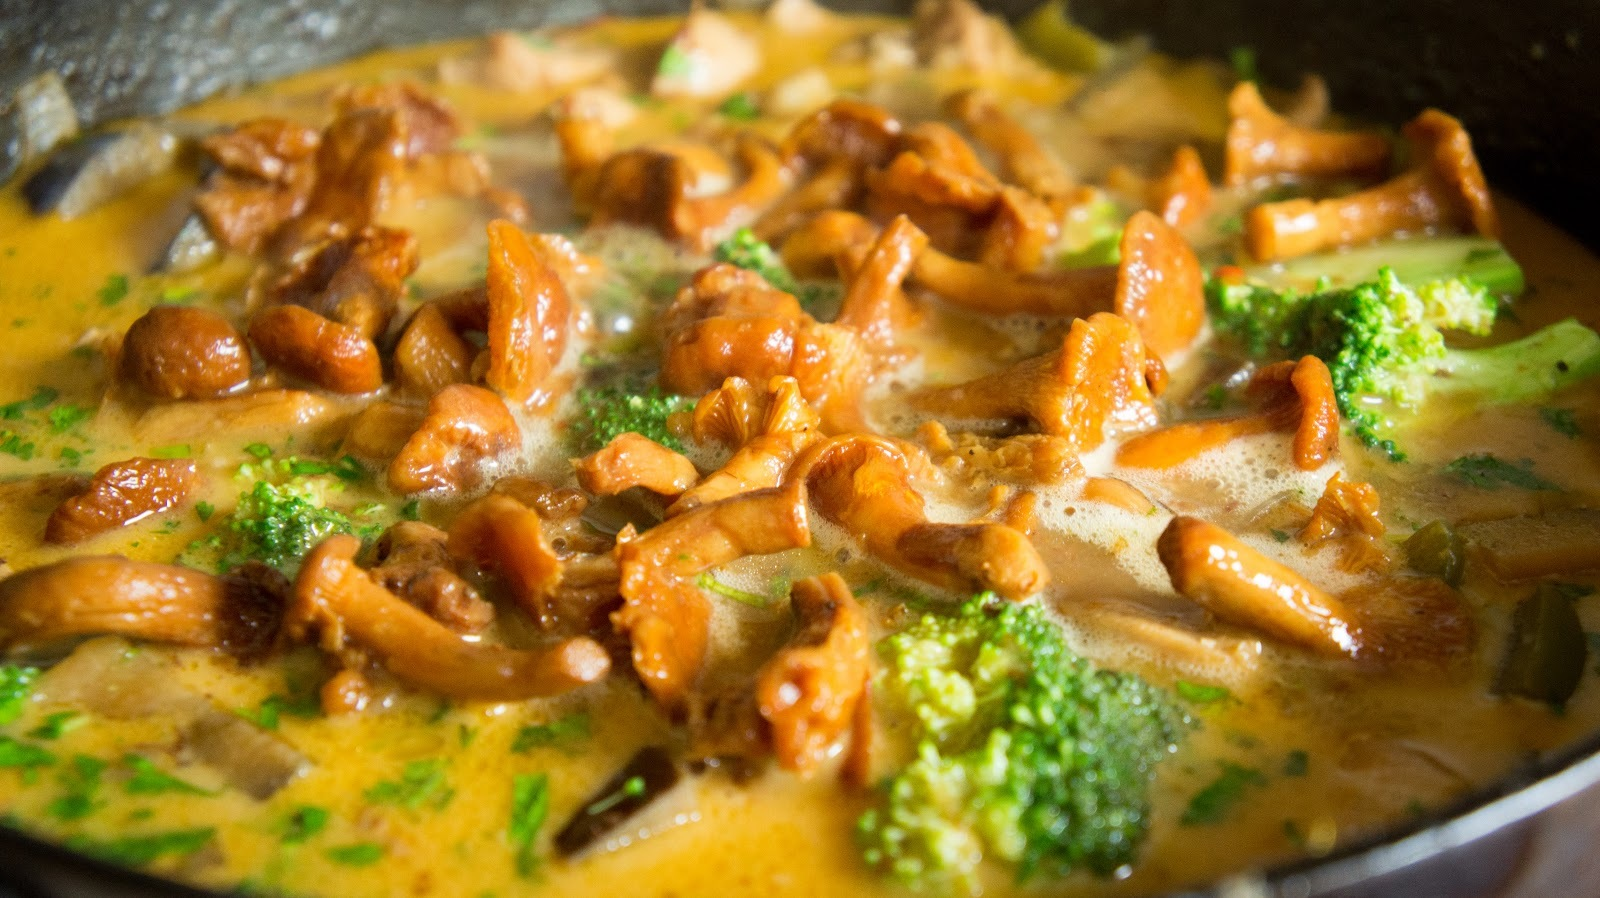 Curry z kurkami. / Curry with chanterelles.